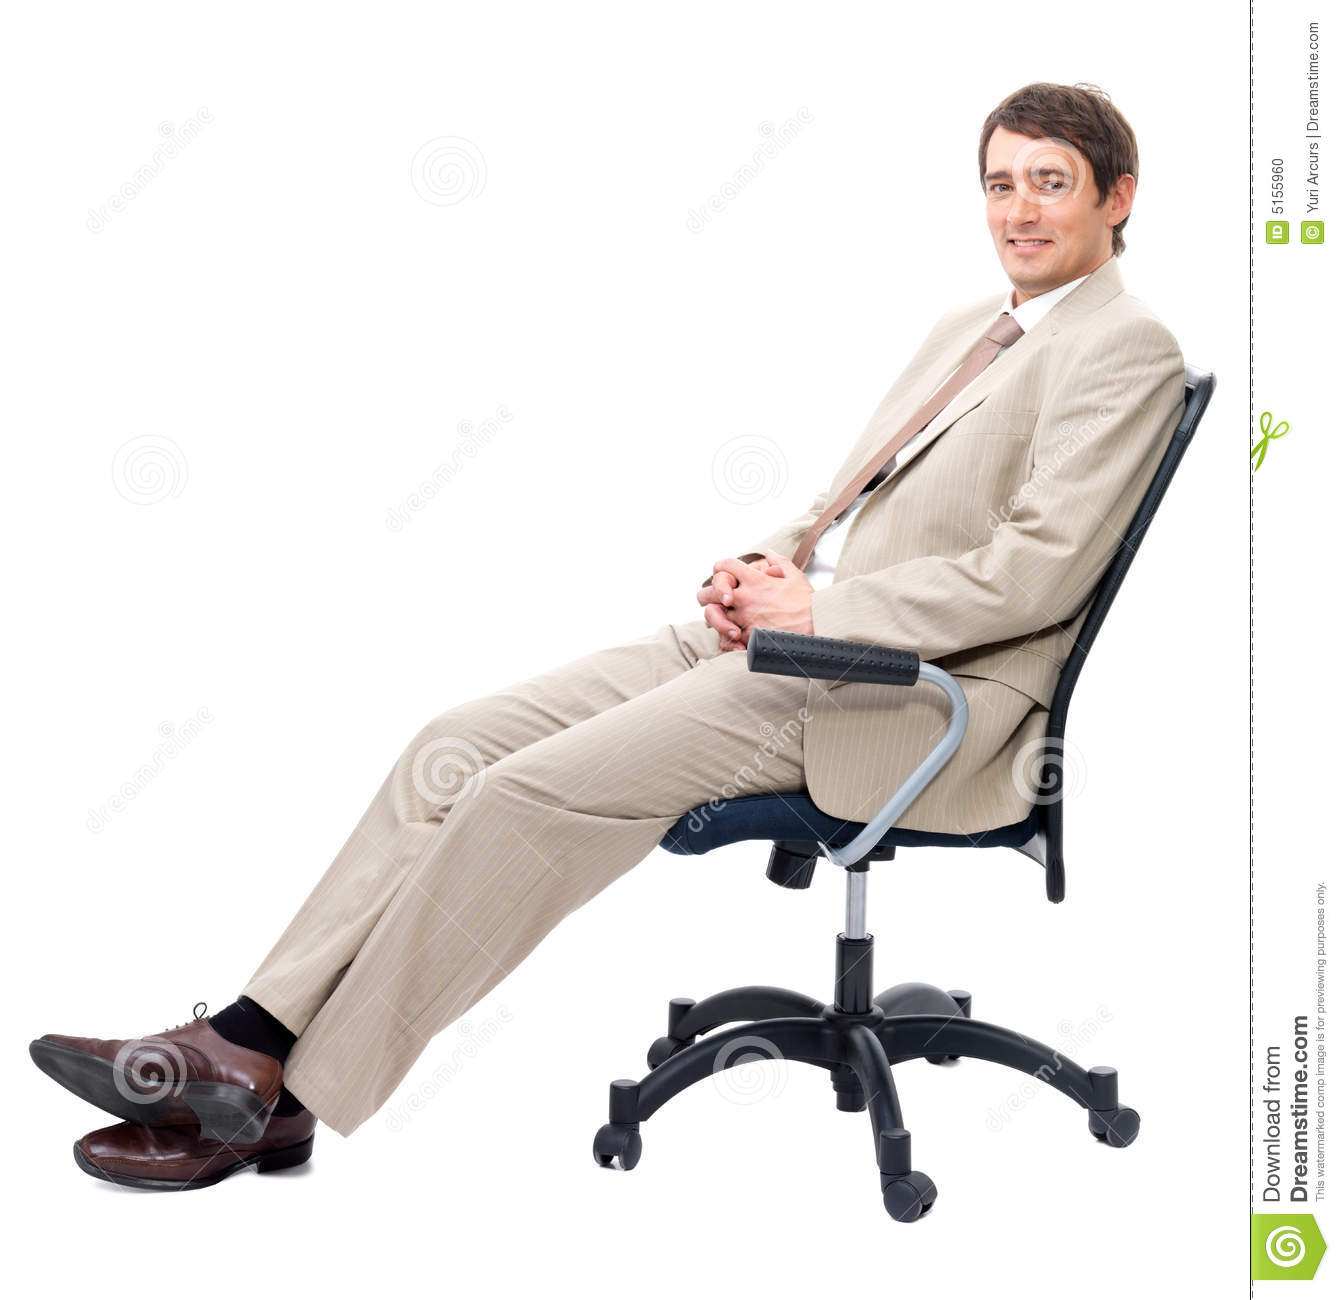 person sitting in chair back view png. People Sitting On Chairs Side View Png Person In Chair Front Back